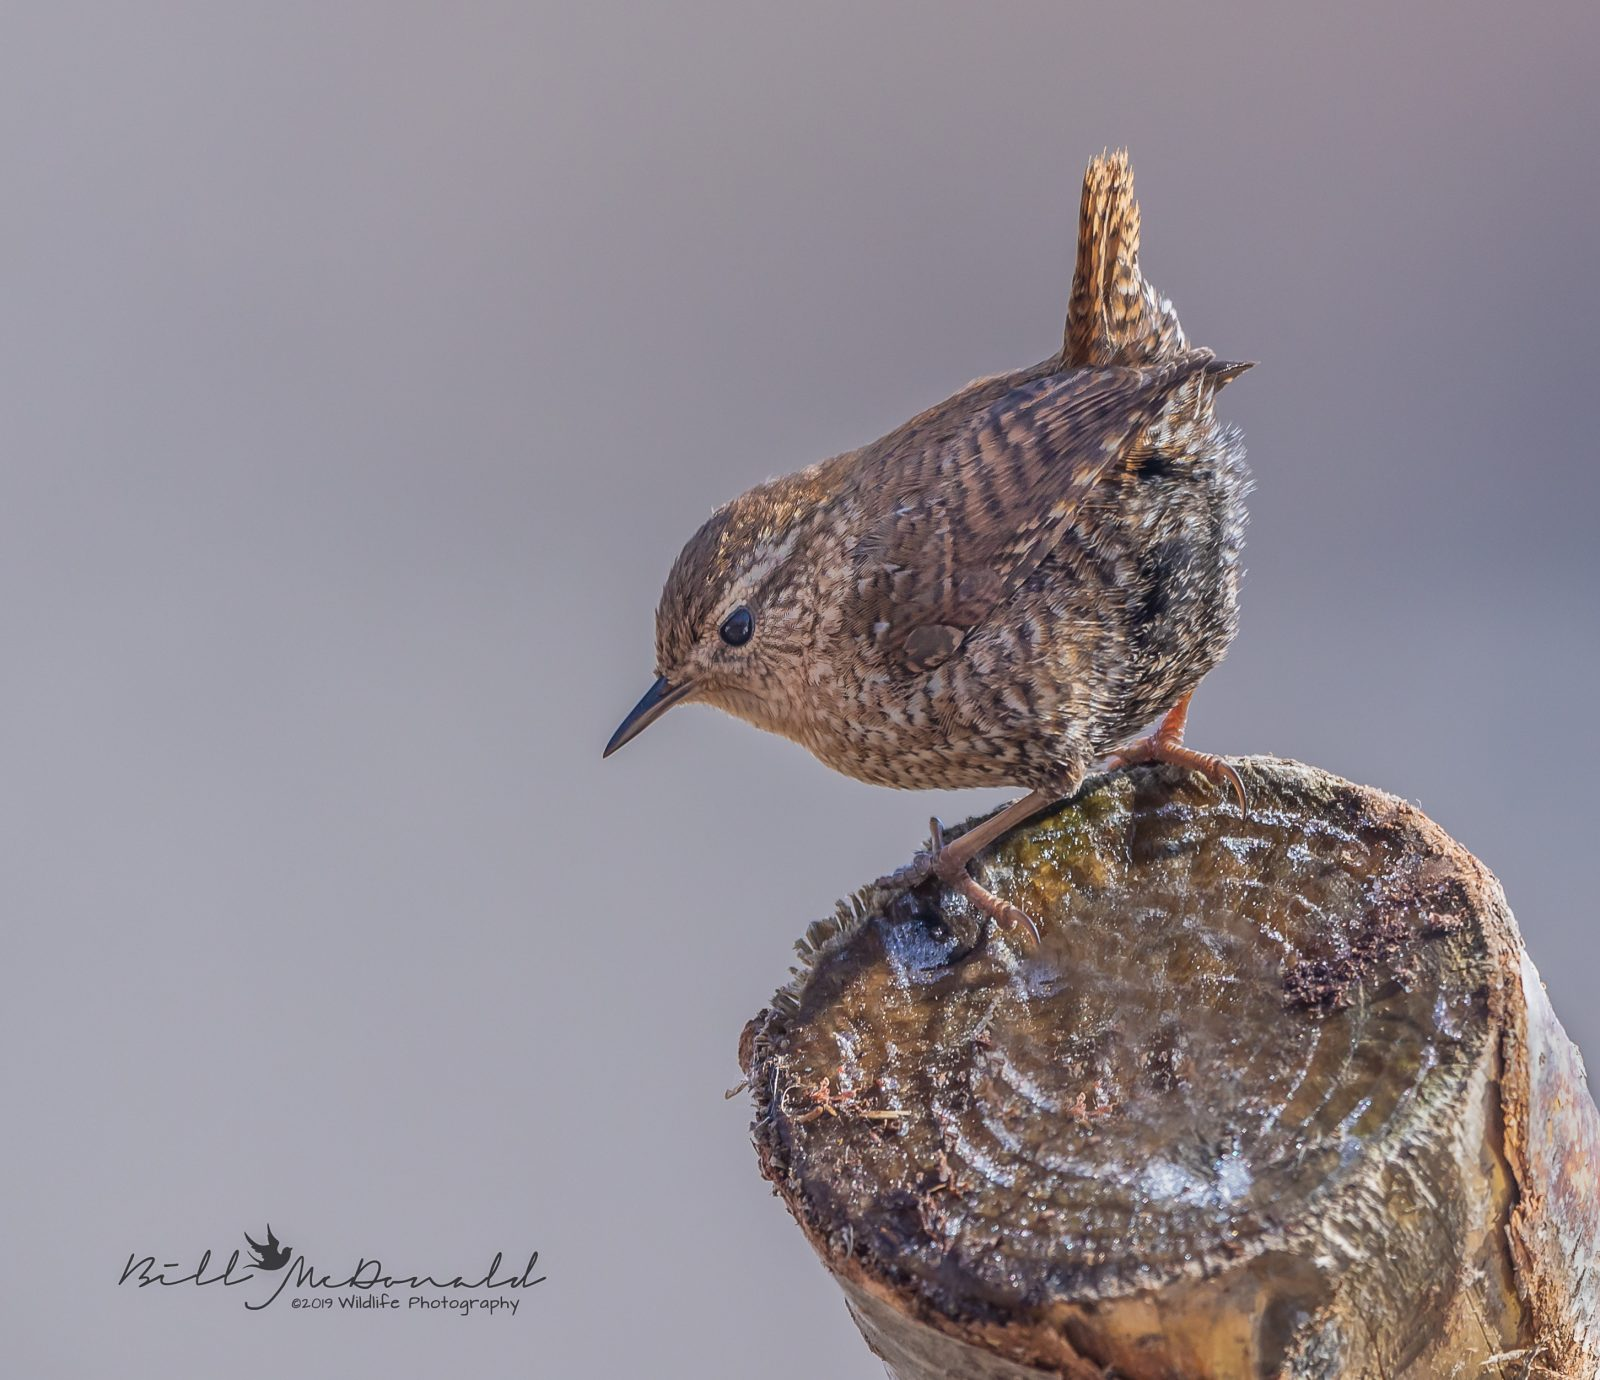 Winter Wren by Bill McDonald